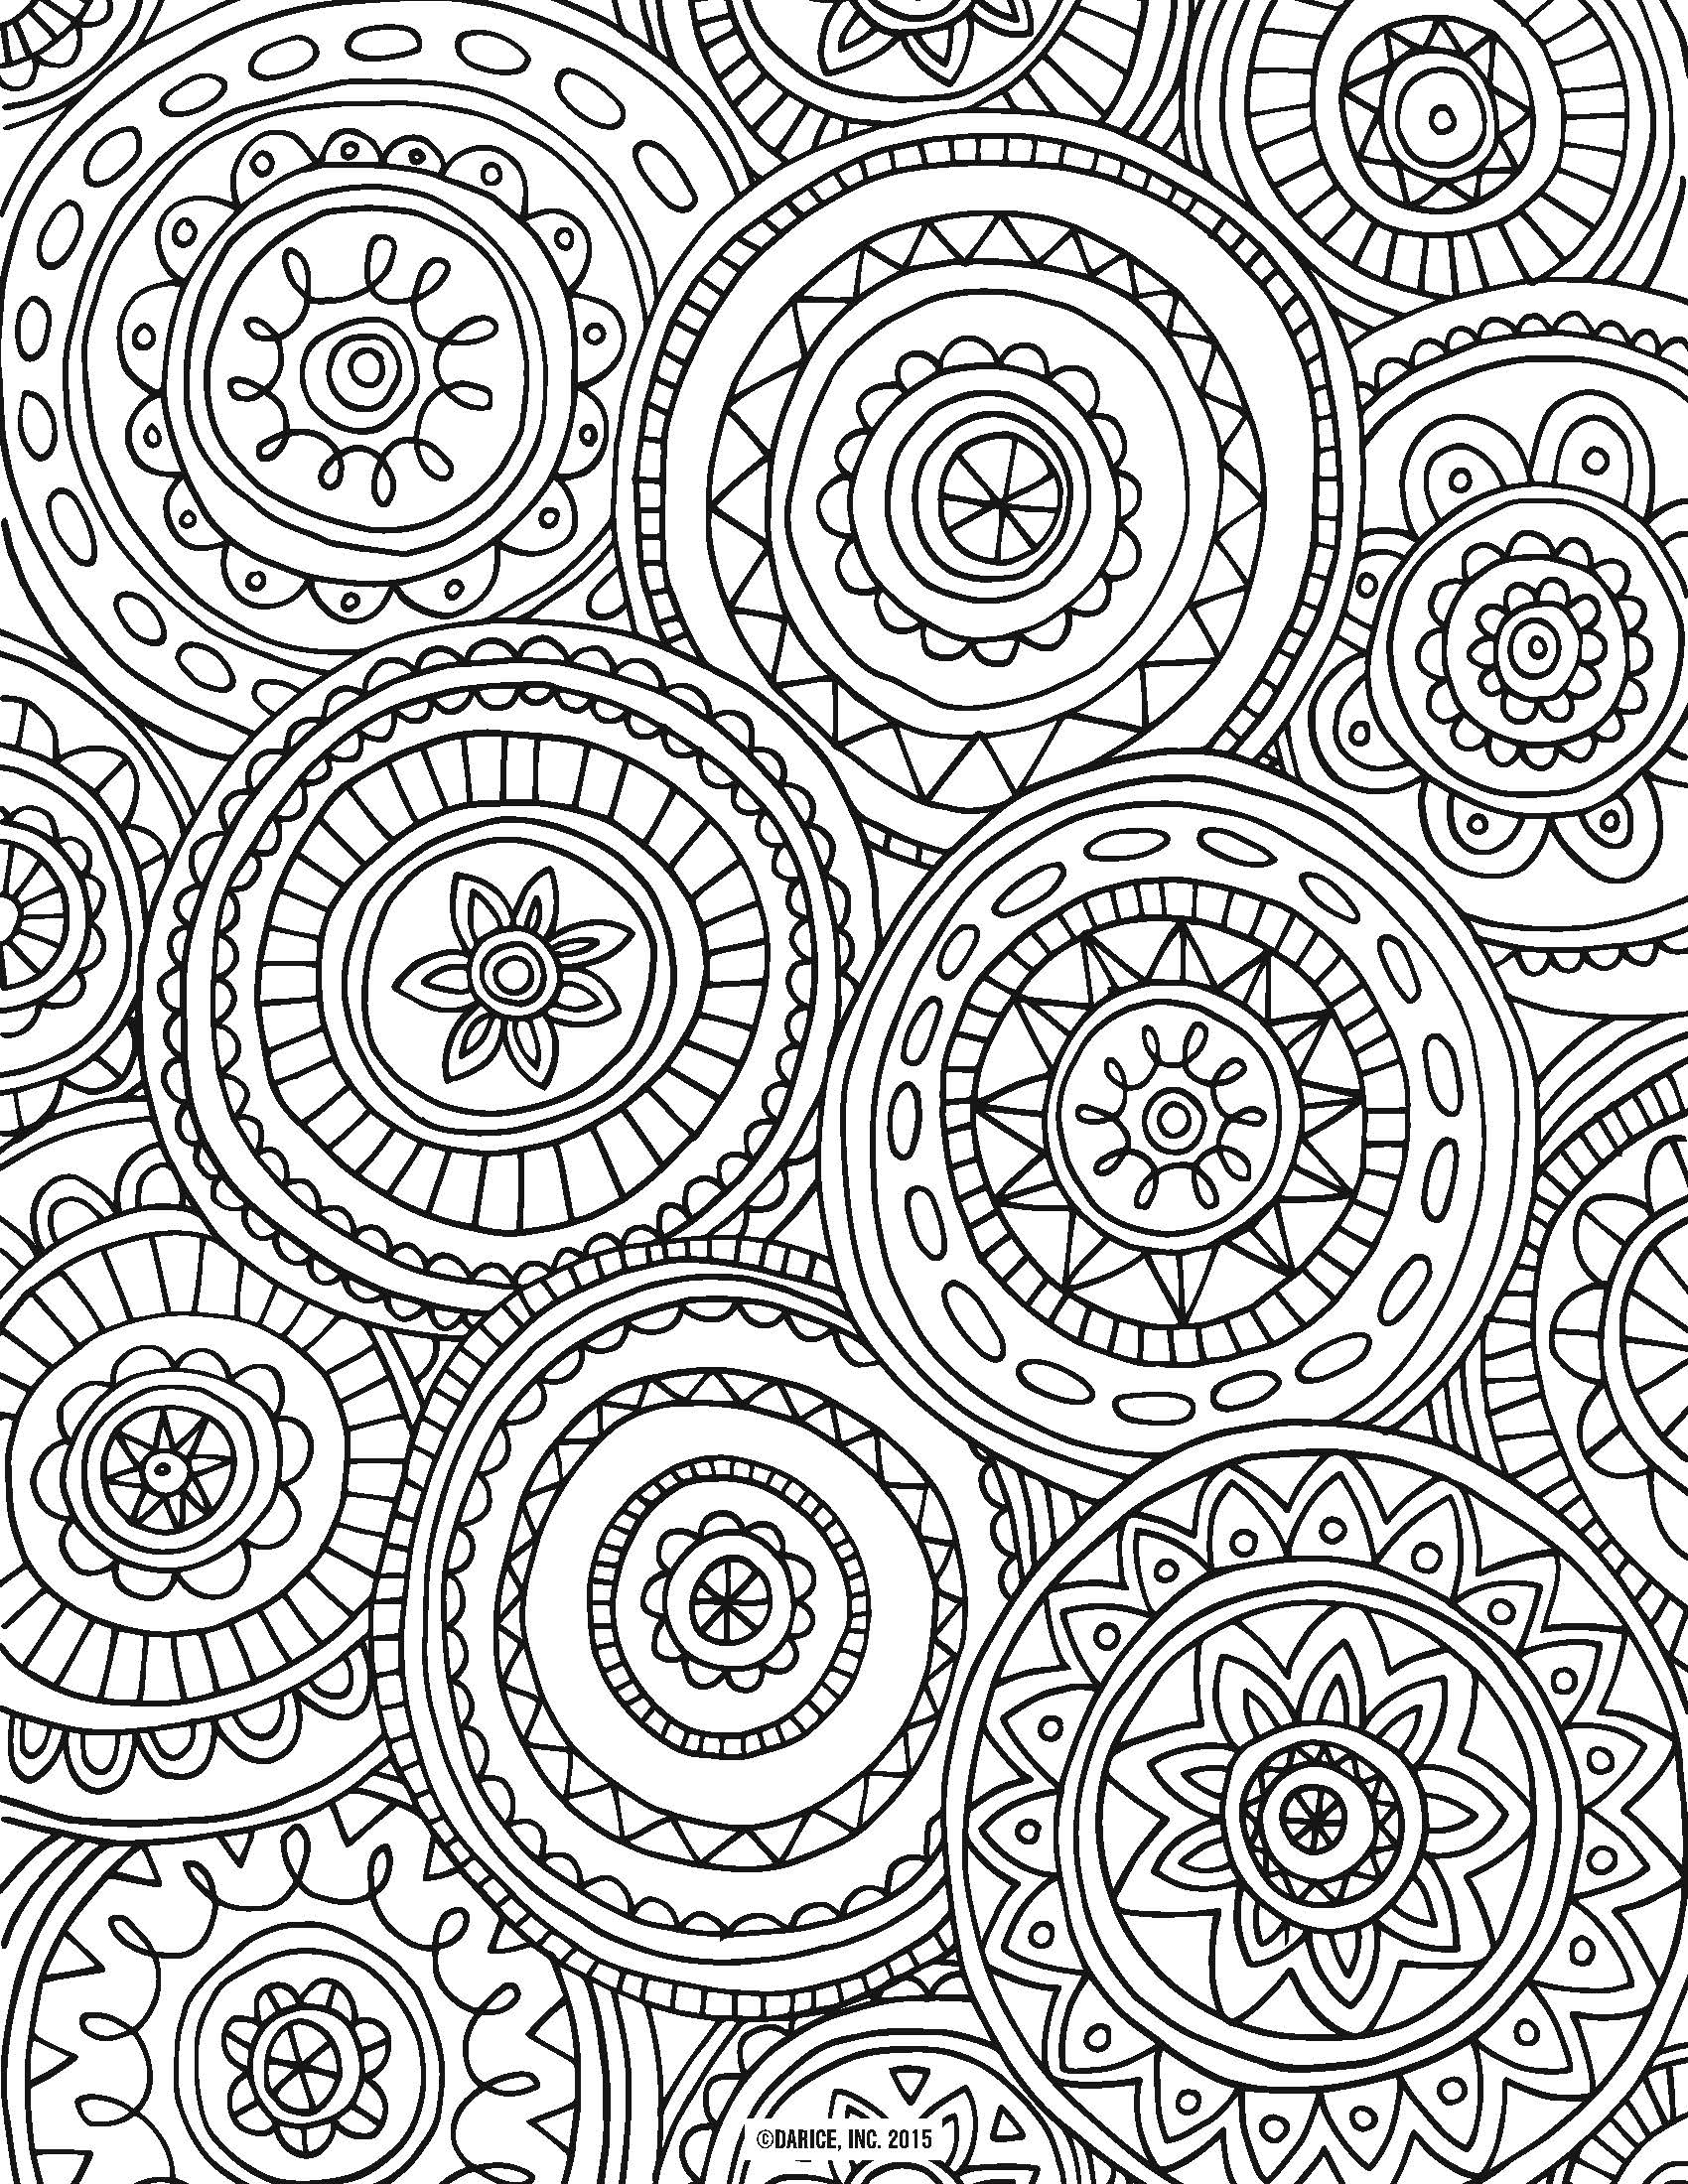 Free Coloring Pages Adults 44 With Free Coloring Pages Adults